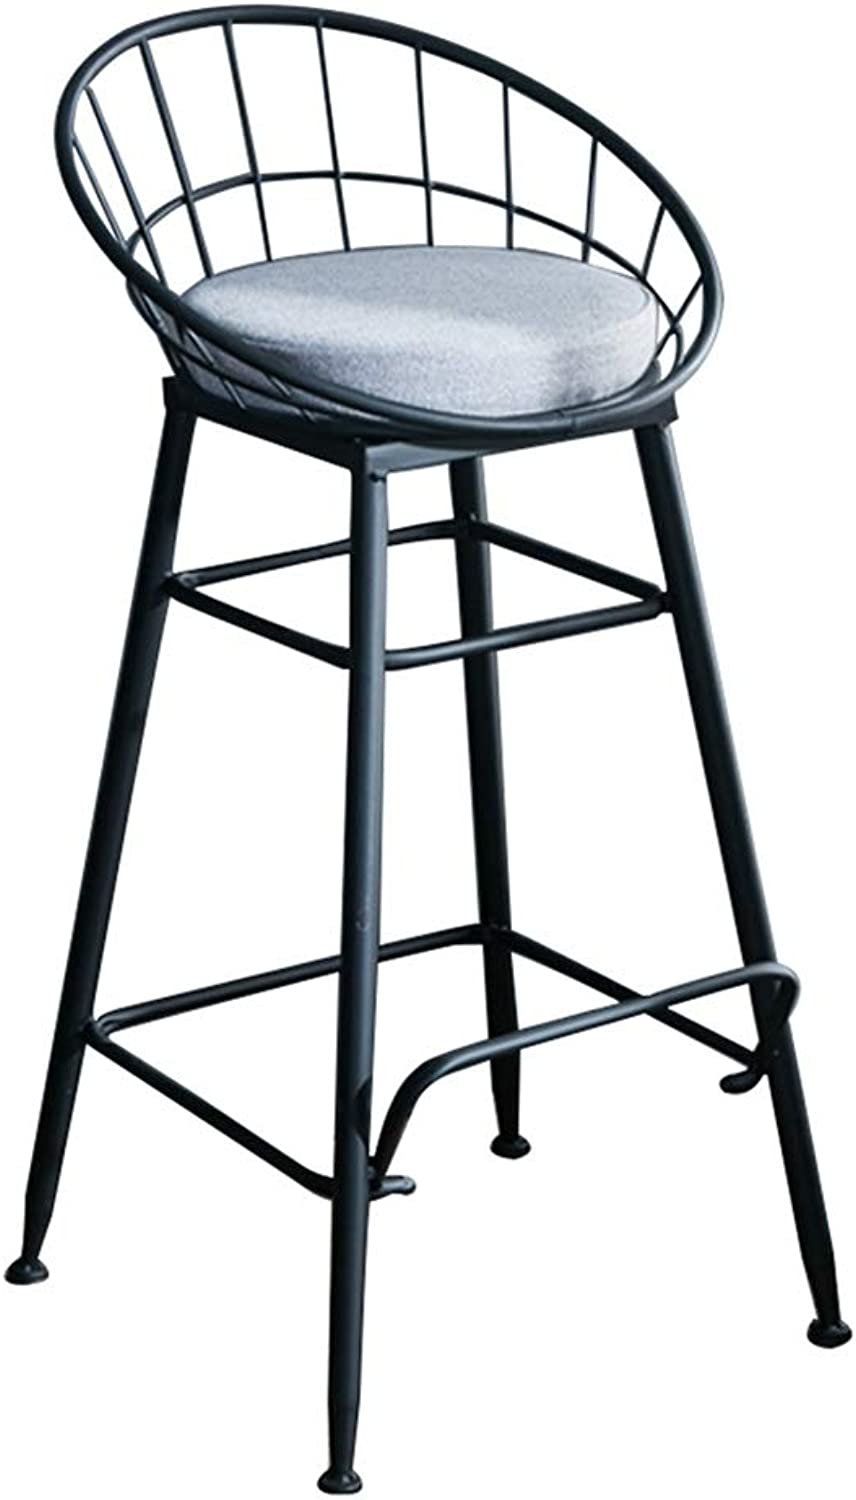 Barstools Chair High Stool Bar Stool Breakfast Chair and Cushion Seat Back Comfort Kitchen Breakfast Counter Greenhouse Black (Size   48x48x85cm)